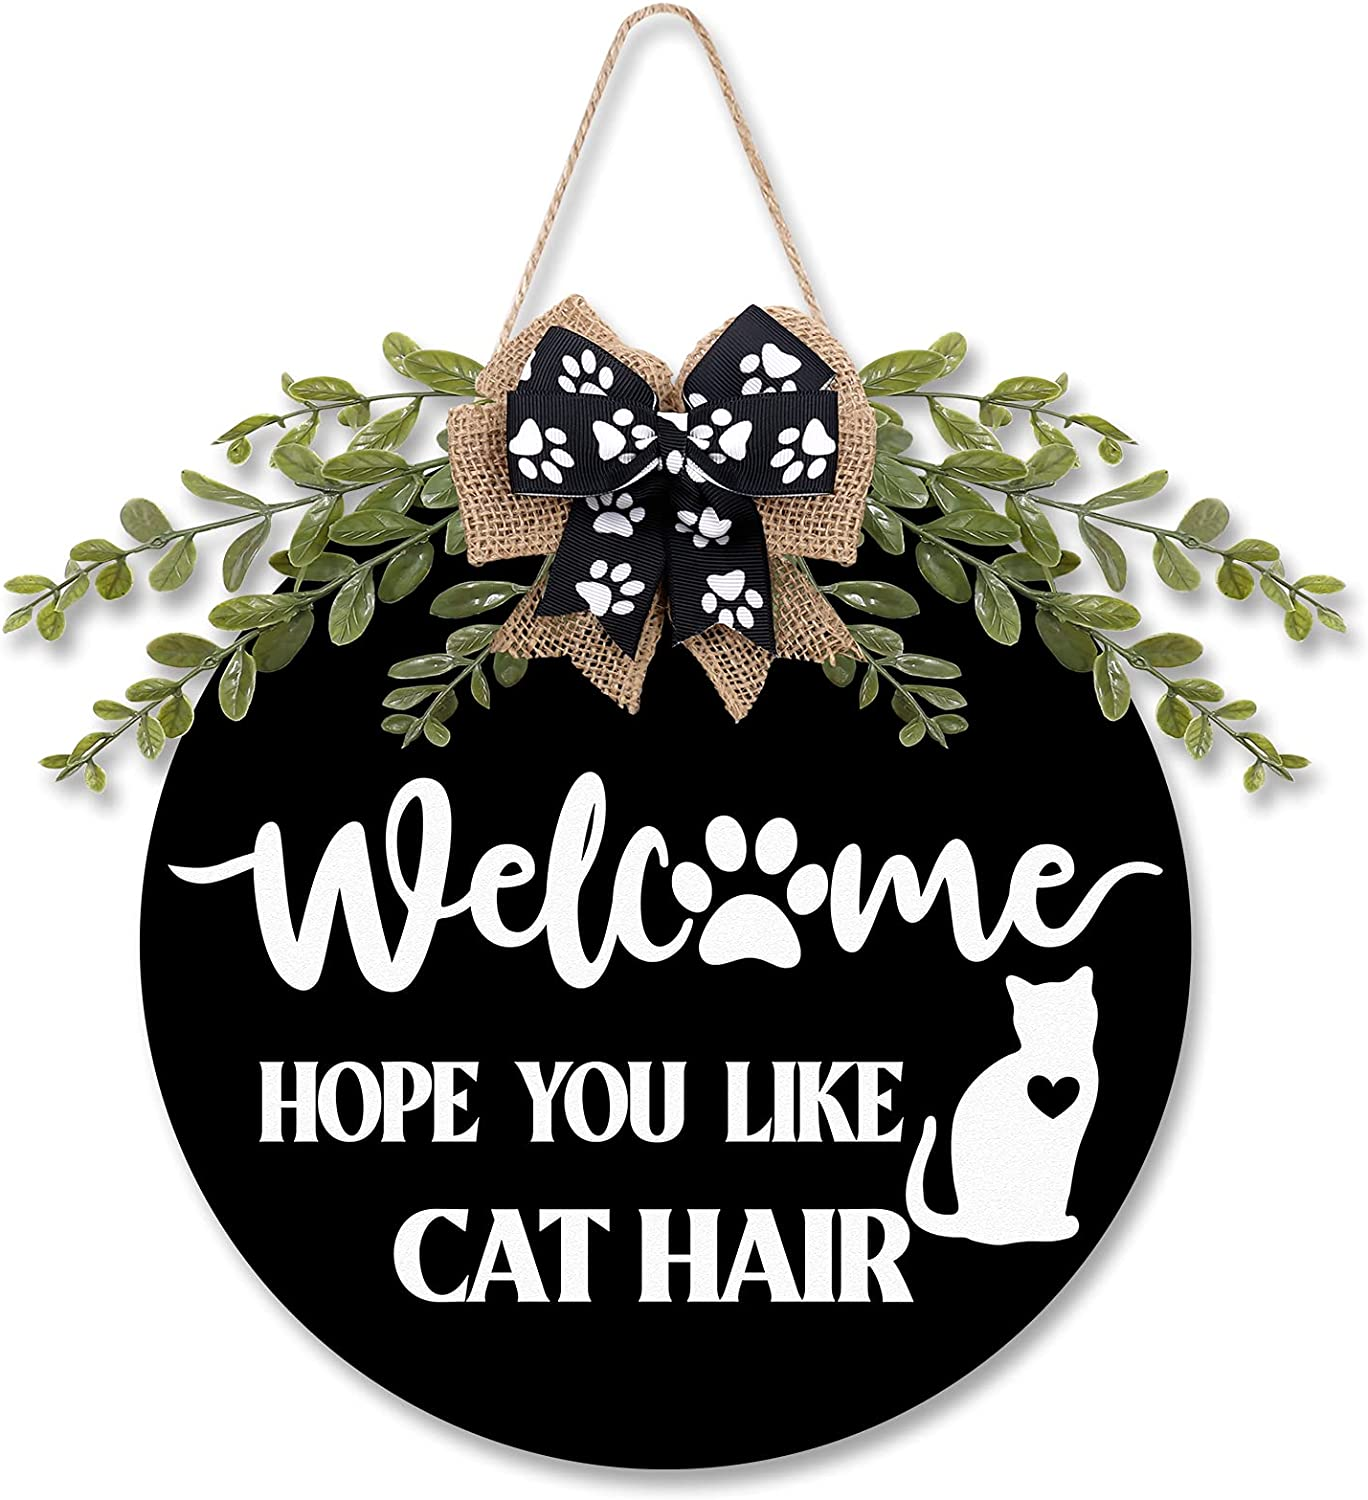 Cat Welcome Sign Rustic We Hope You Like Cat Hair Wooden Door Hanger Decorations Kitty Front Door Wreath Greenery Paw Prints Bow for Cat Lovers Housewarming Gift Farmhouse Home Decor 12 Inches (Black)